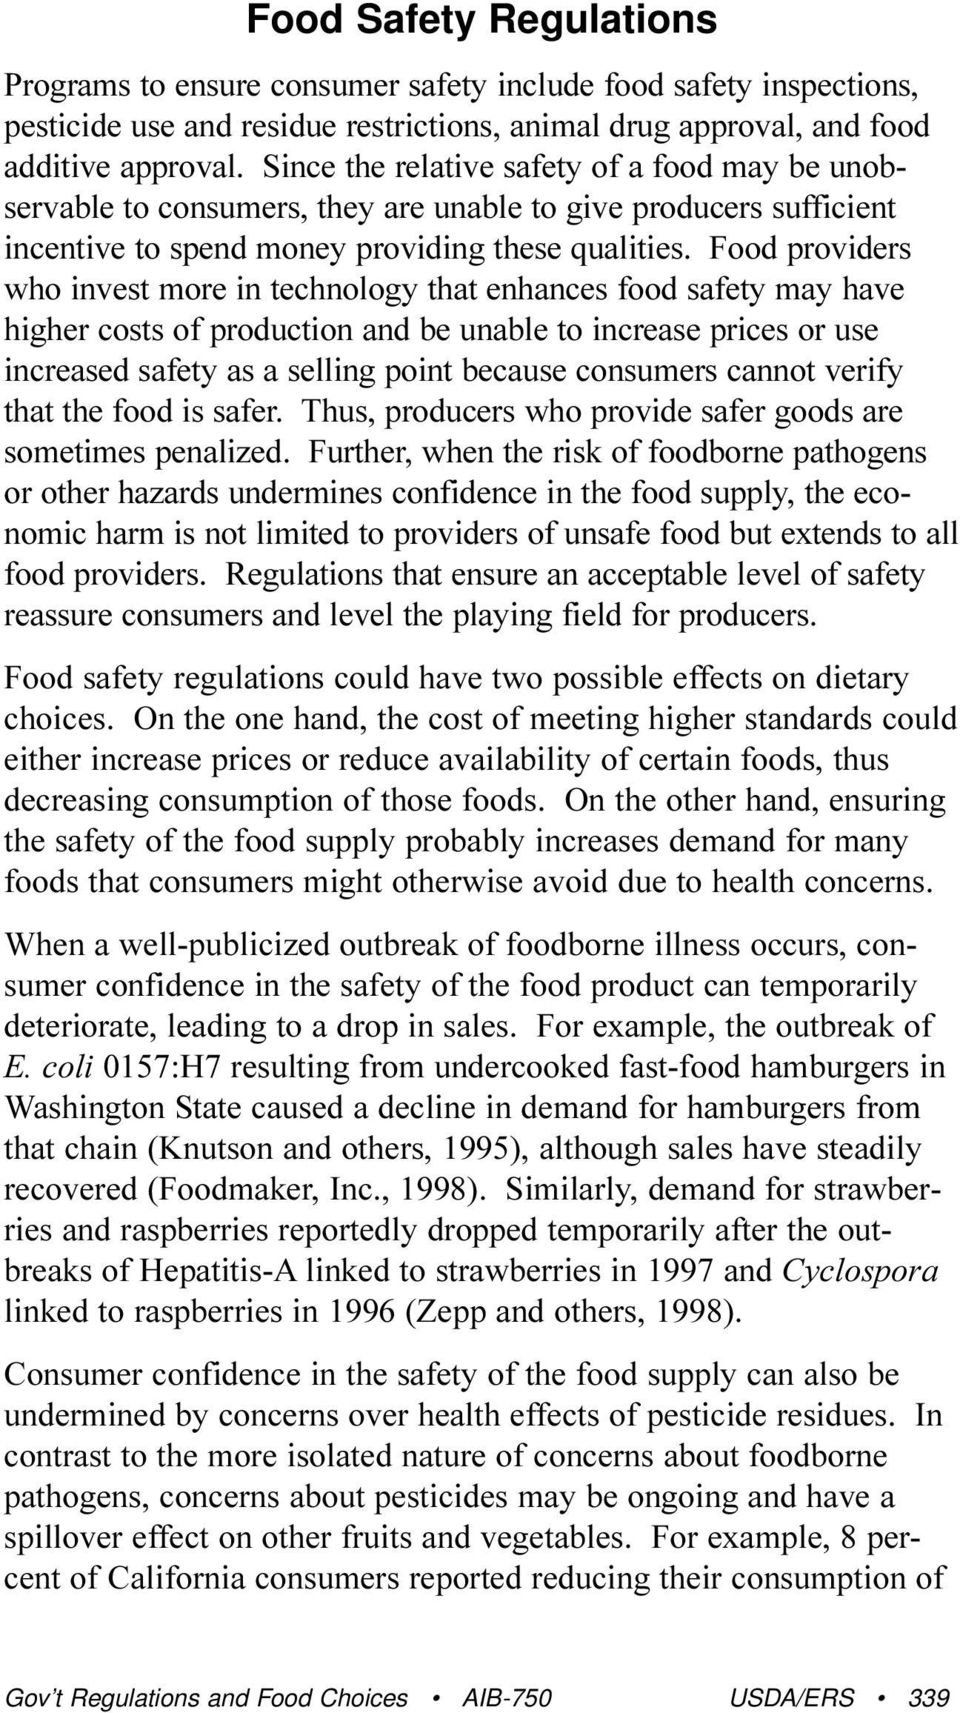 Food providers who invest more in technology that enhances food safety may have higher costs of production and be unable to increase prices or use increased safety as a selling point because